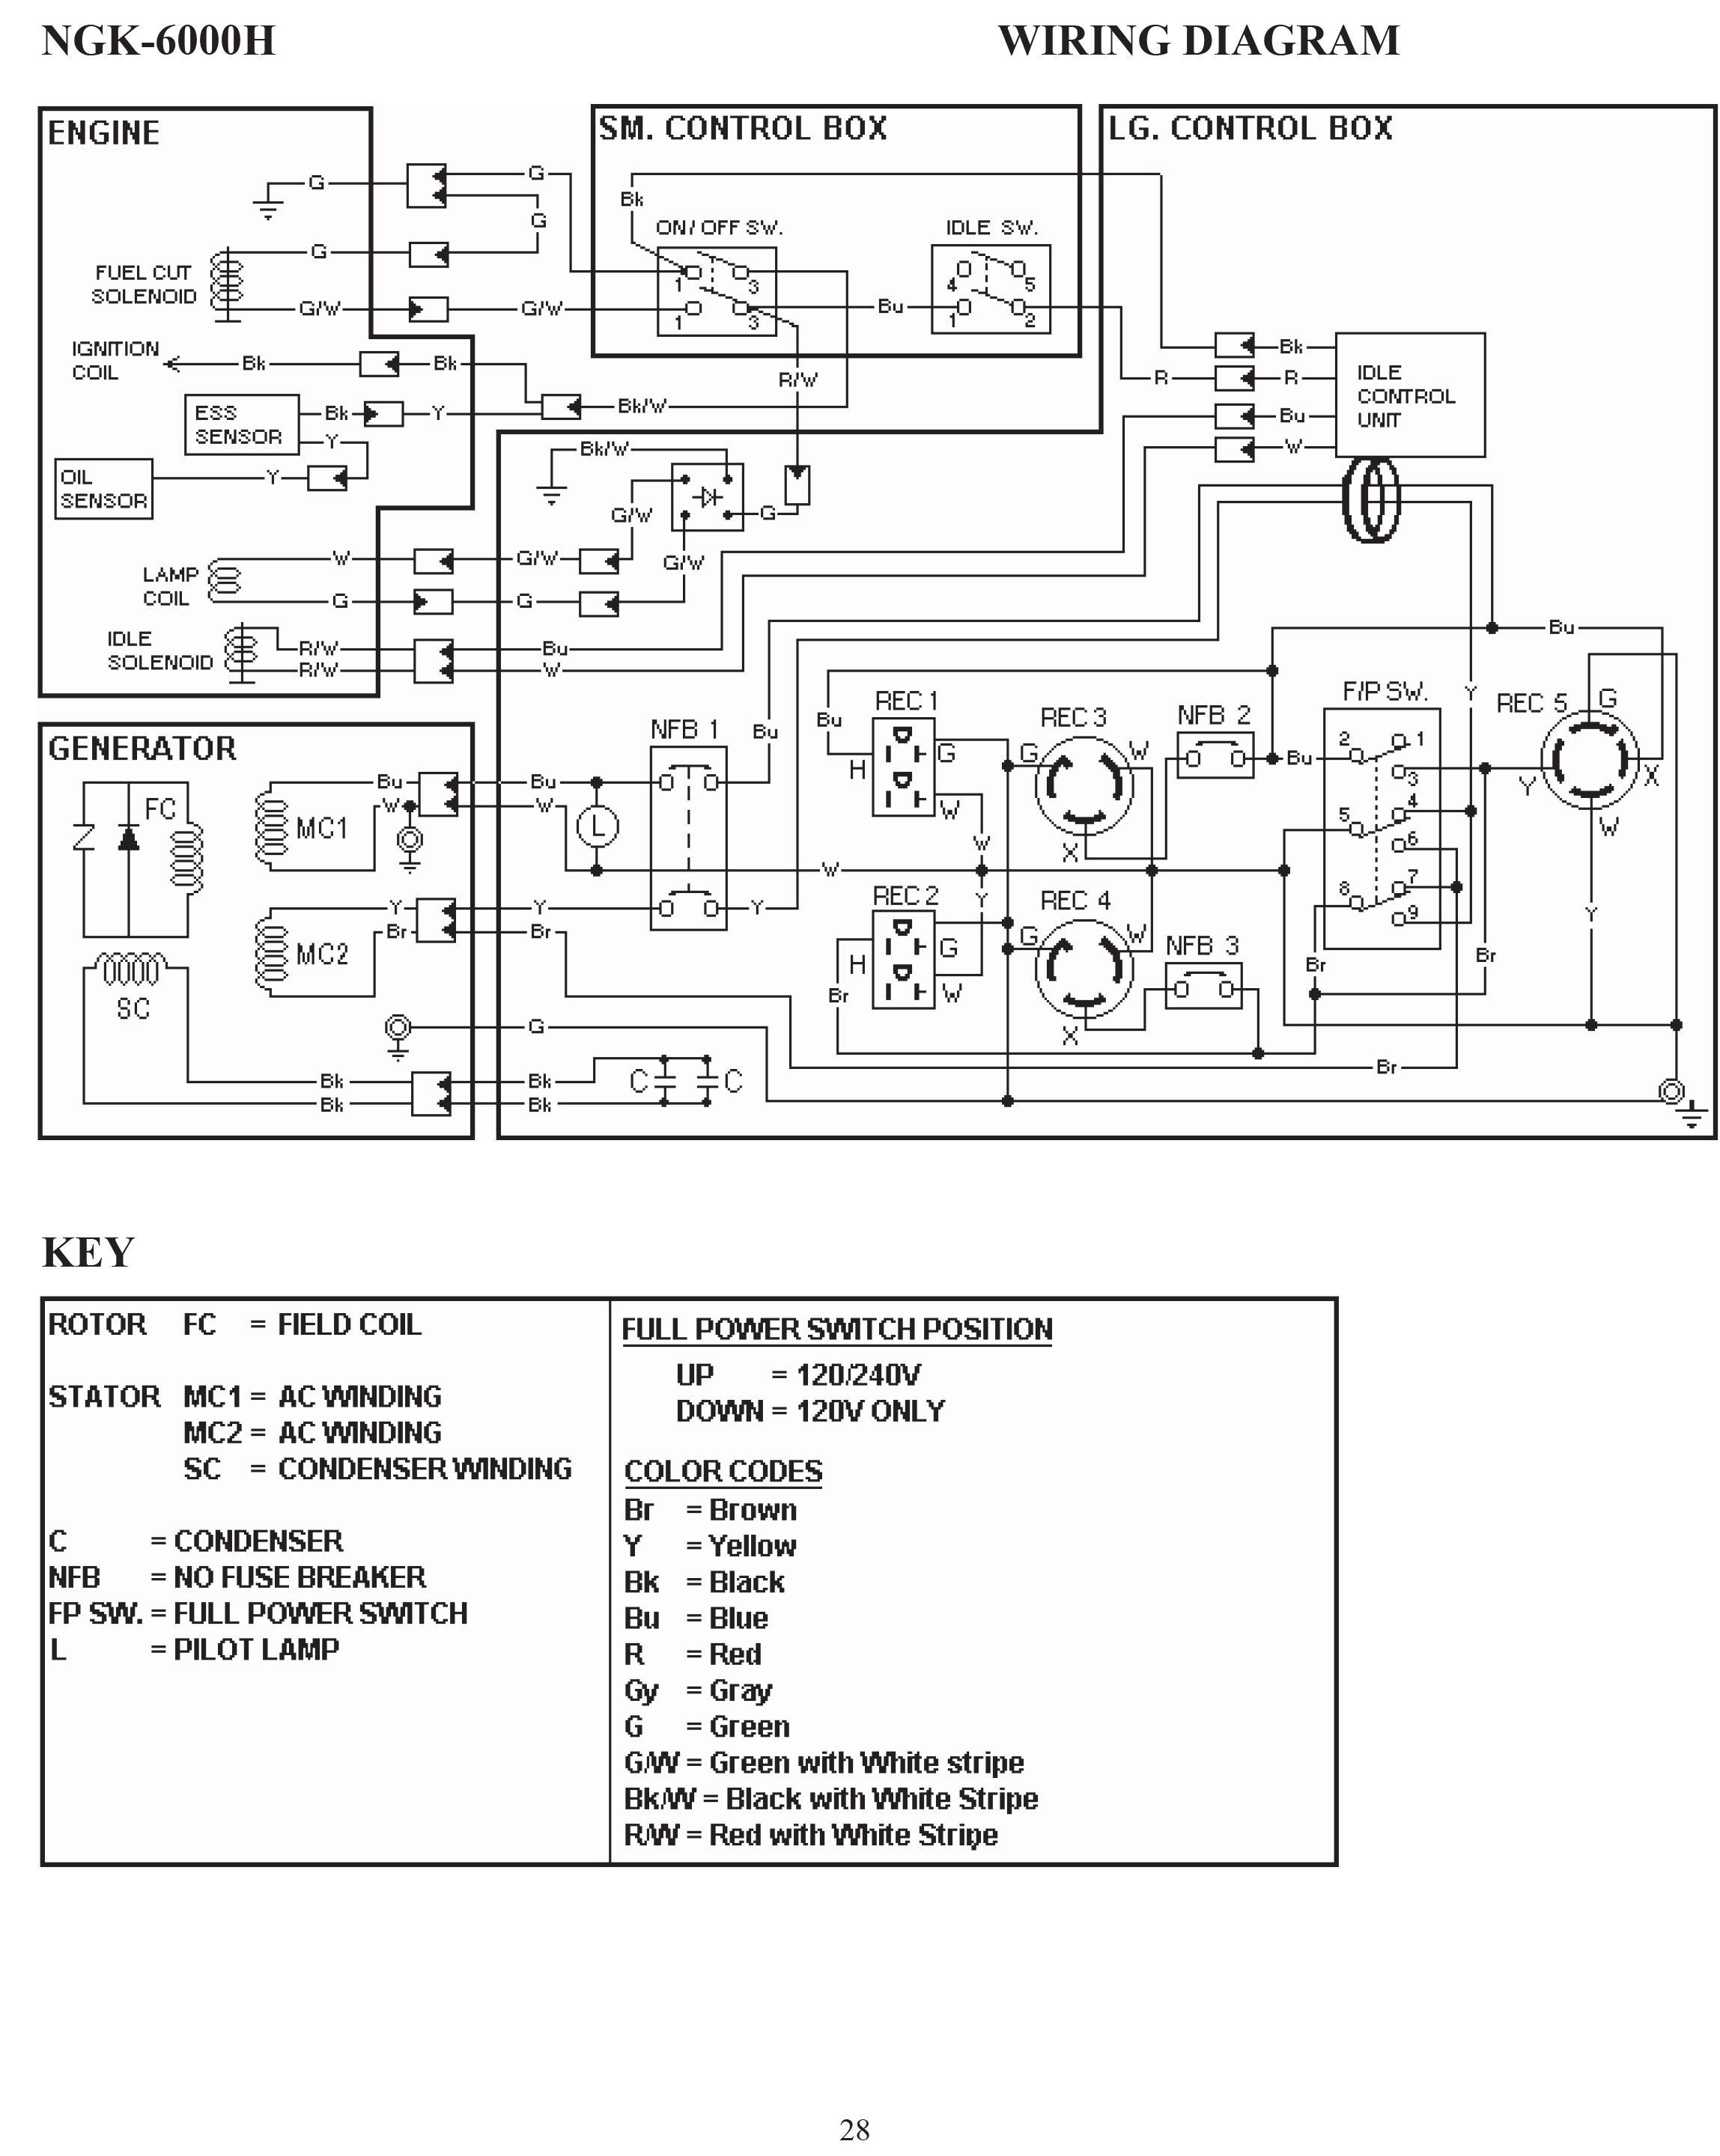 motorhome generator wiring diagram motorhome image wiring diagram winnebago the wiring diagram on motorhome generator wiring diagram